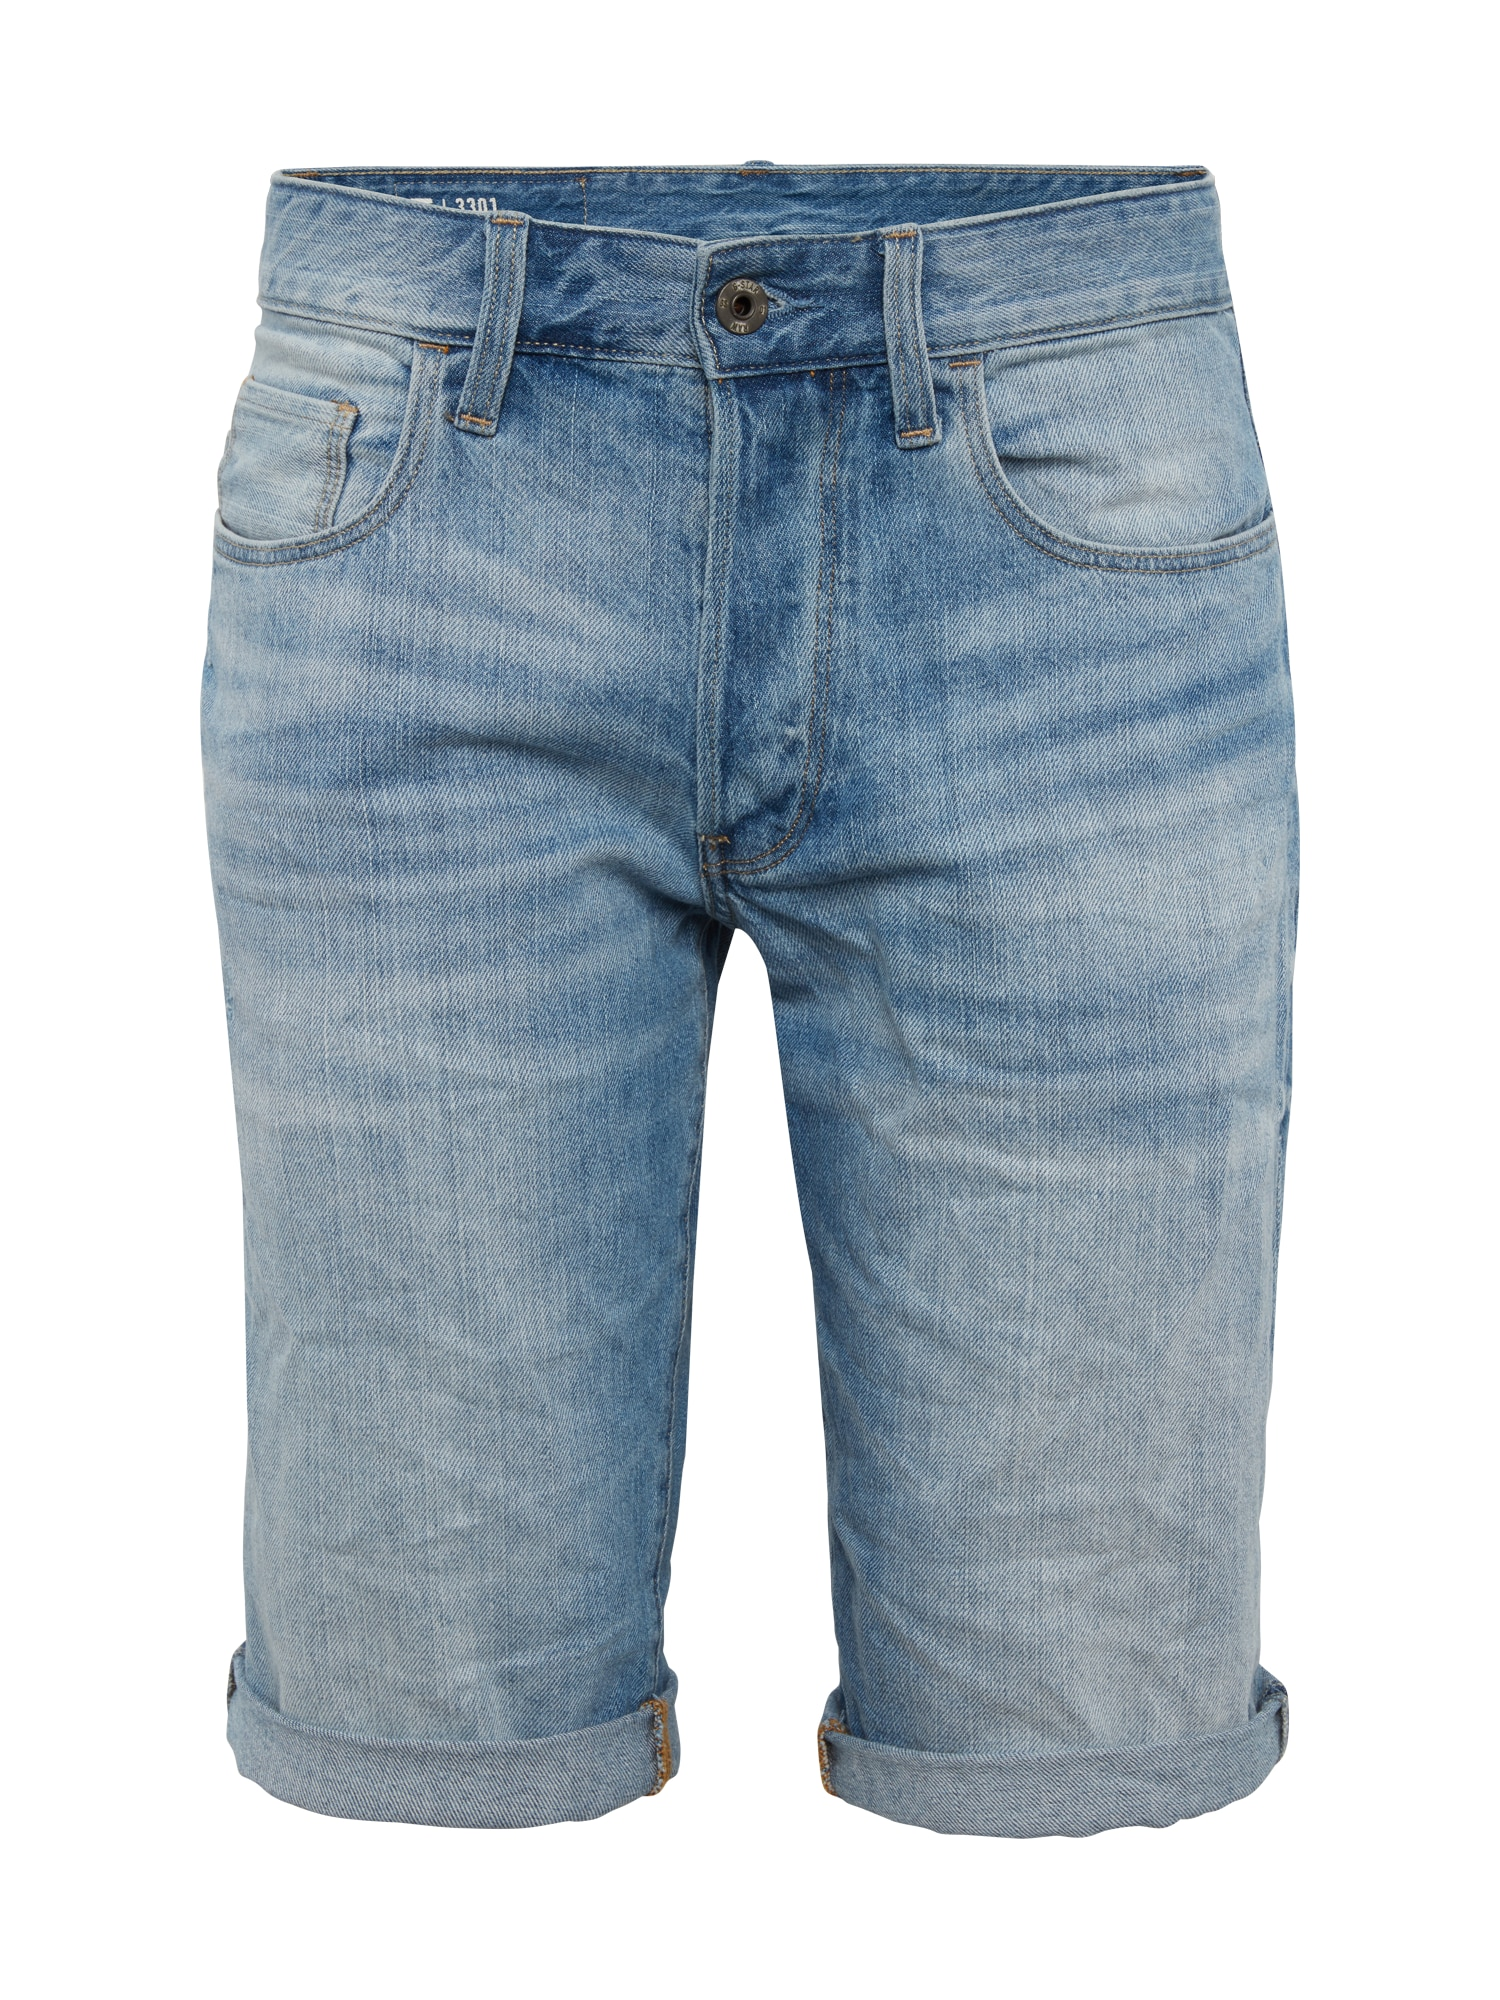 Džíny 3301 12 blue denim G-STAR RAW